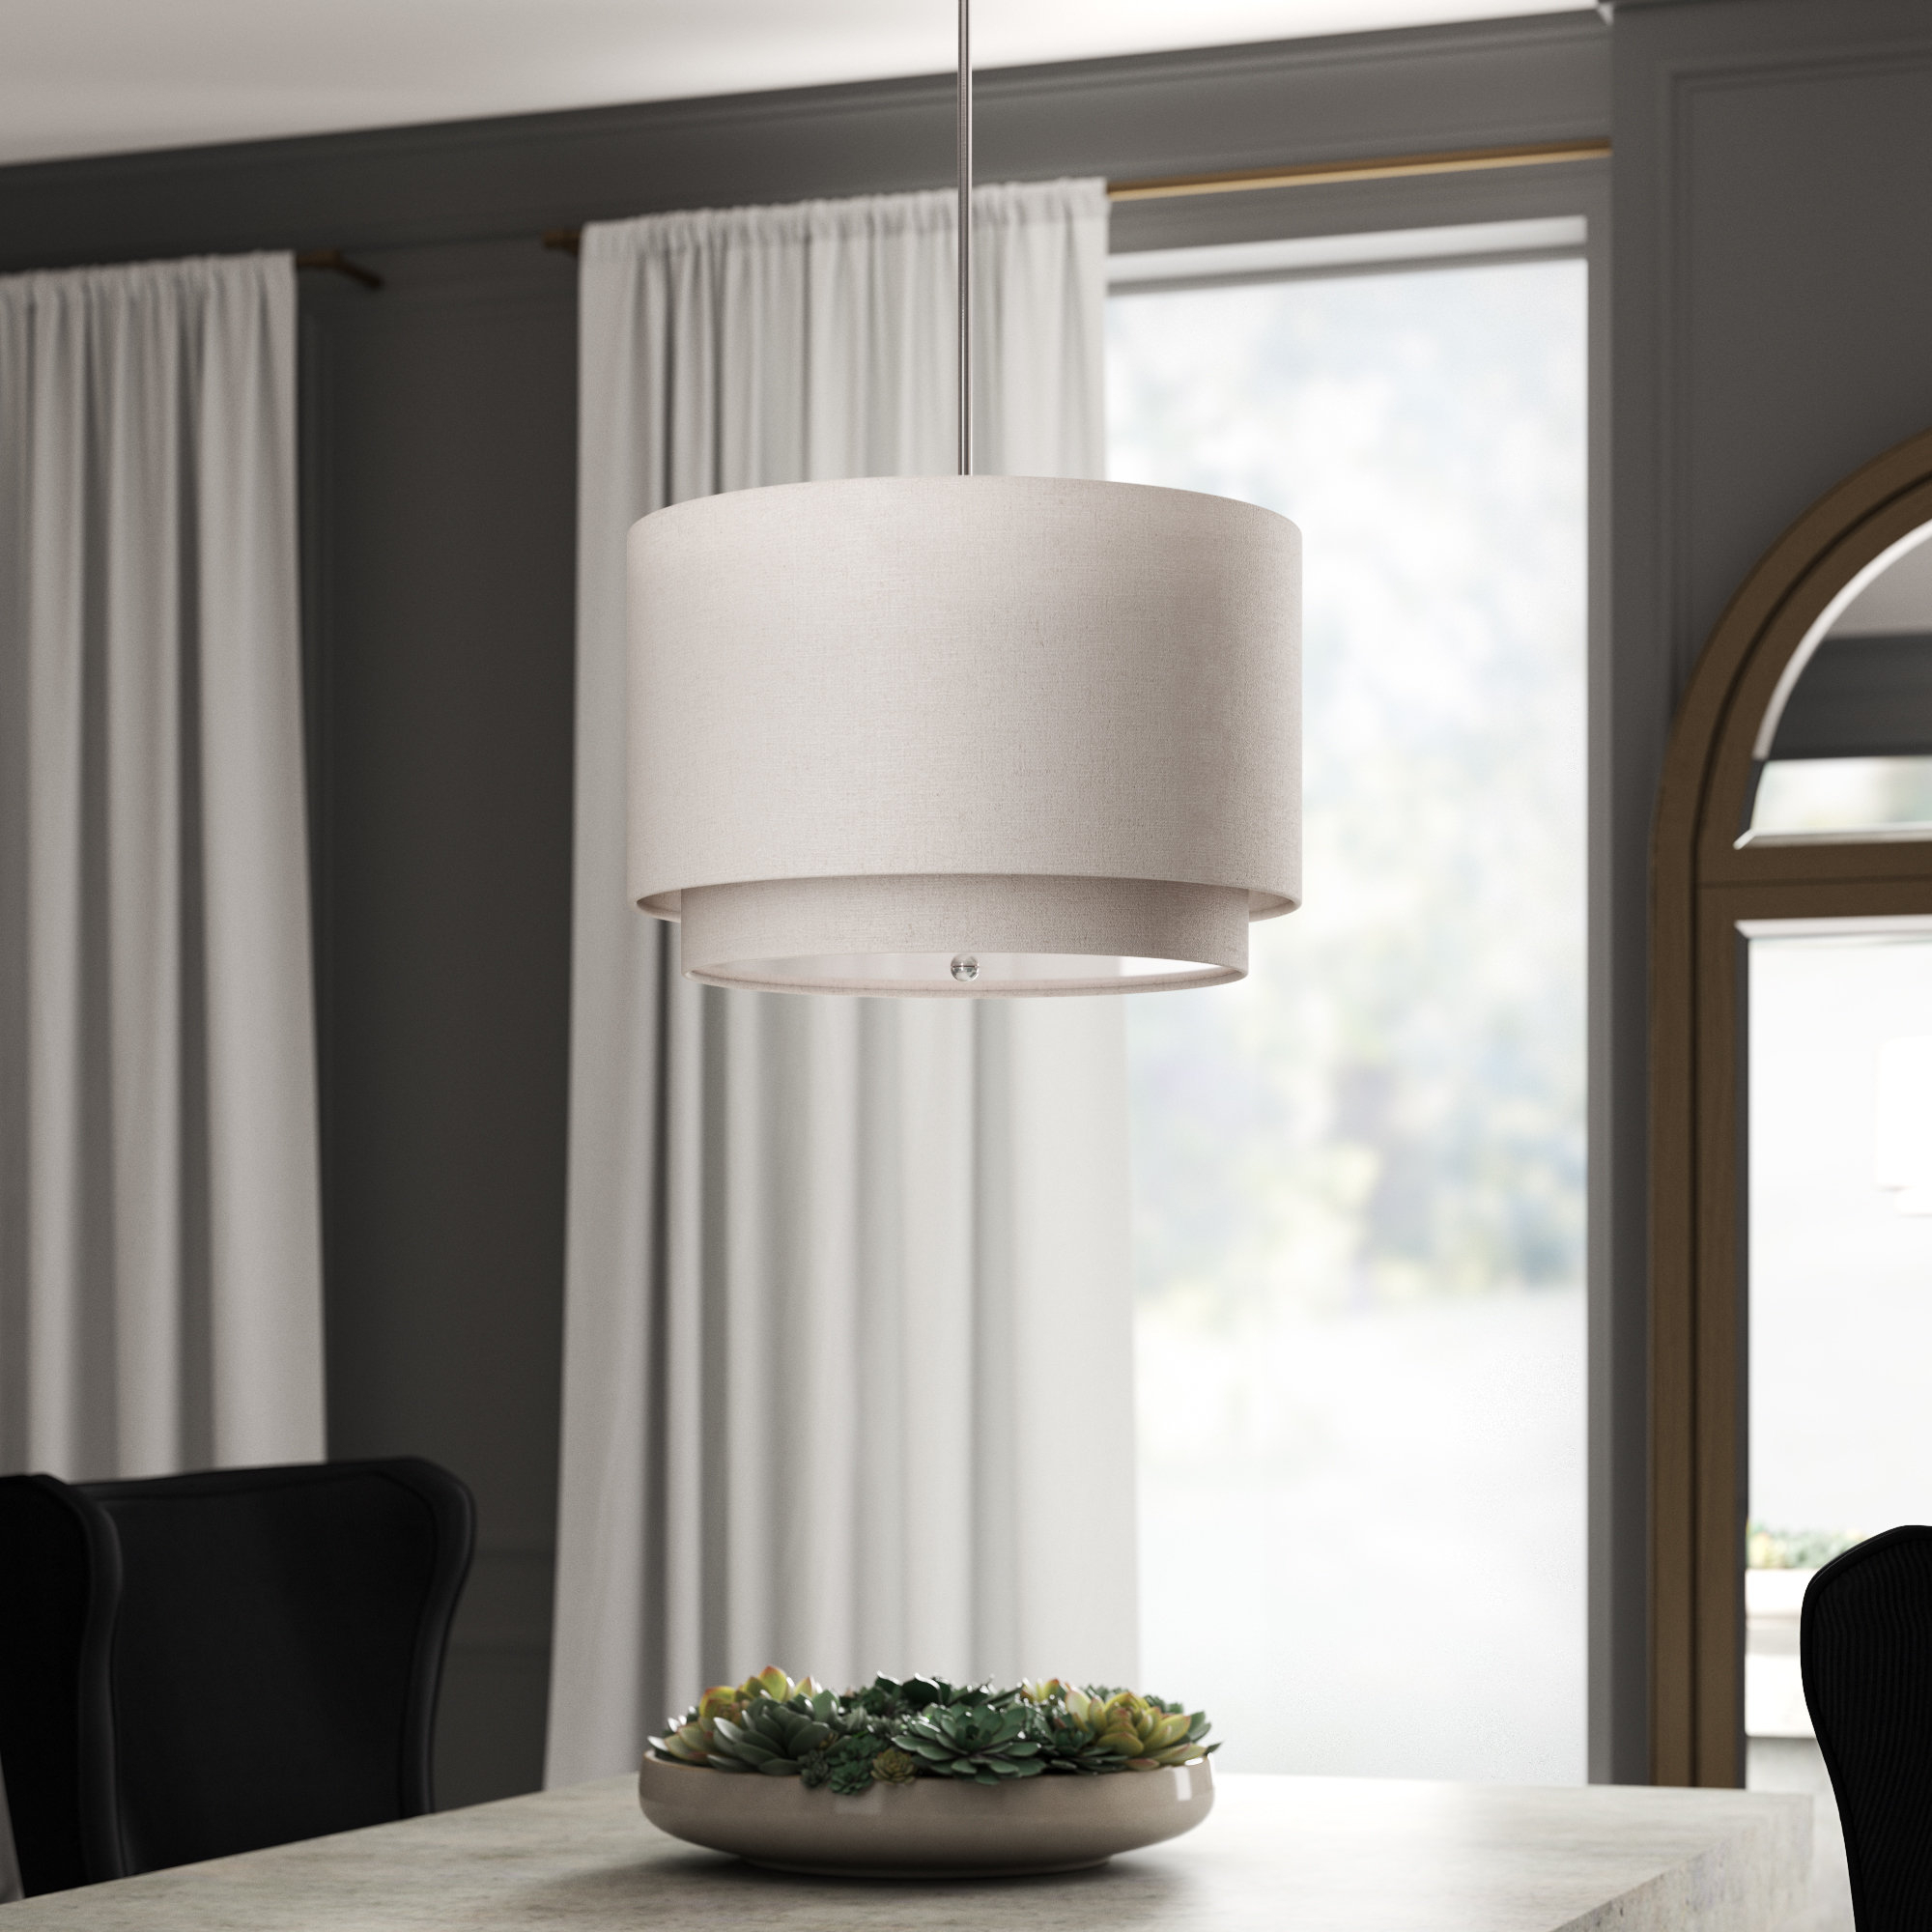 Burslem 3 Light Single Drum Pendants With Fashionable Goodlow 3 Light Drum Pendant (Gallery 9 of 20)